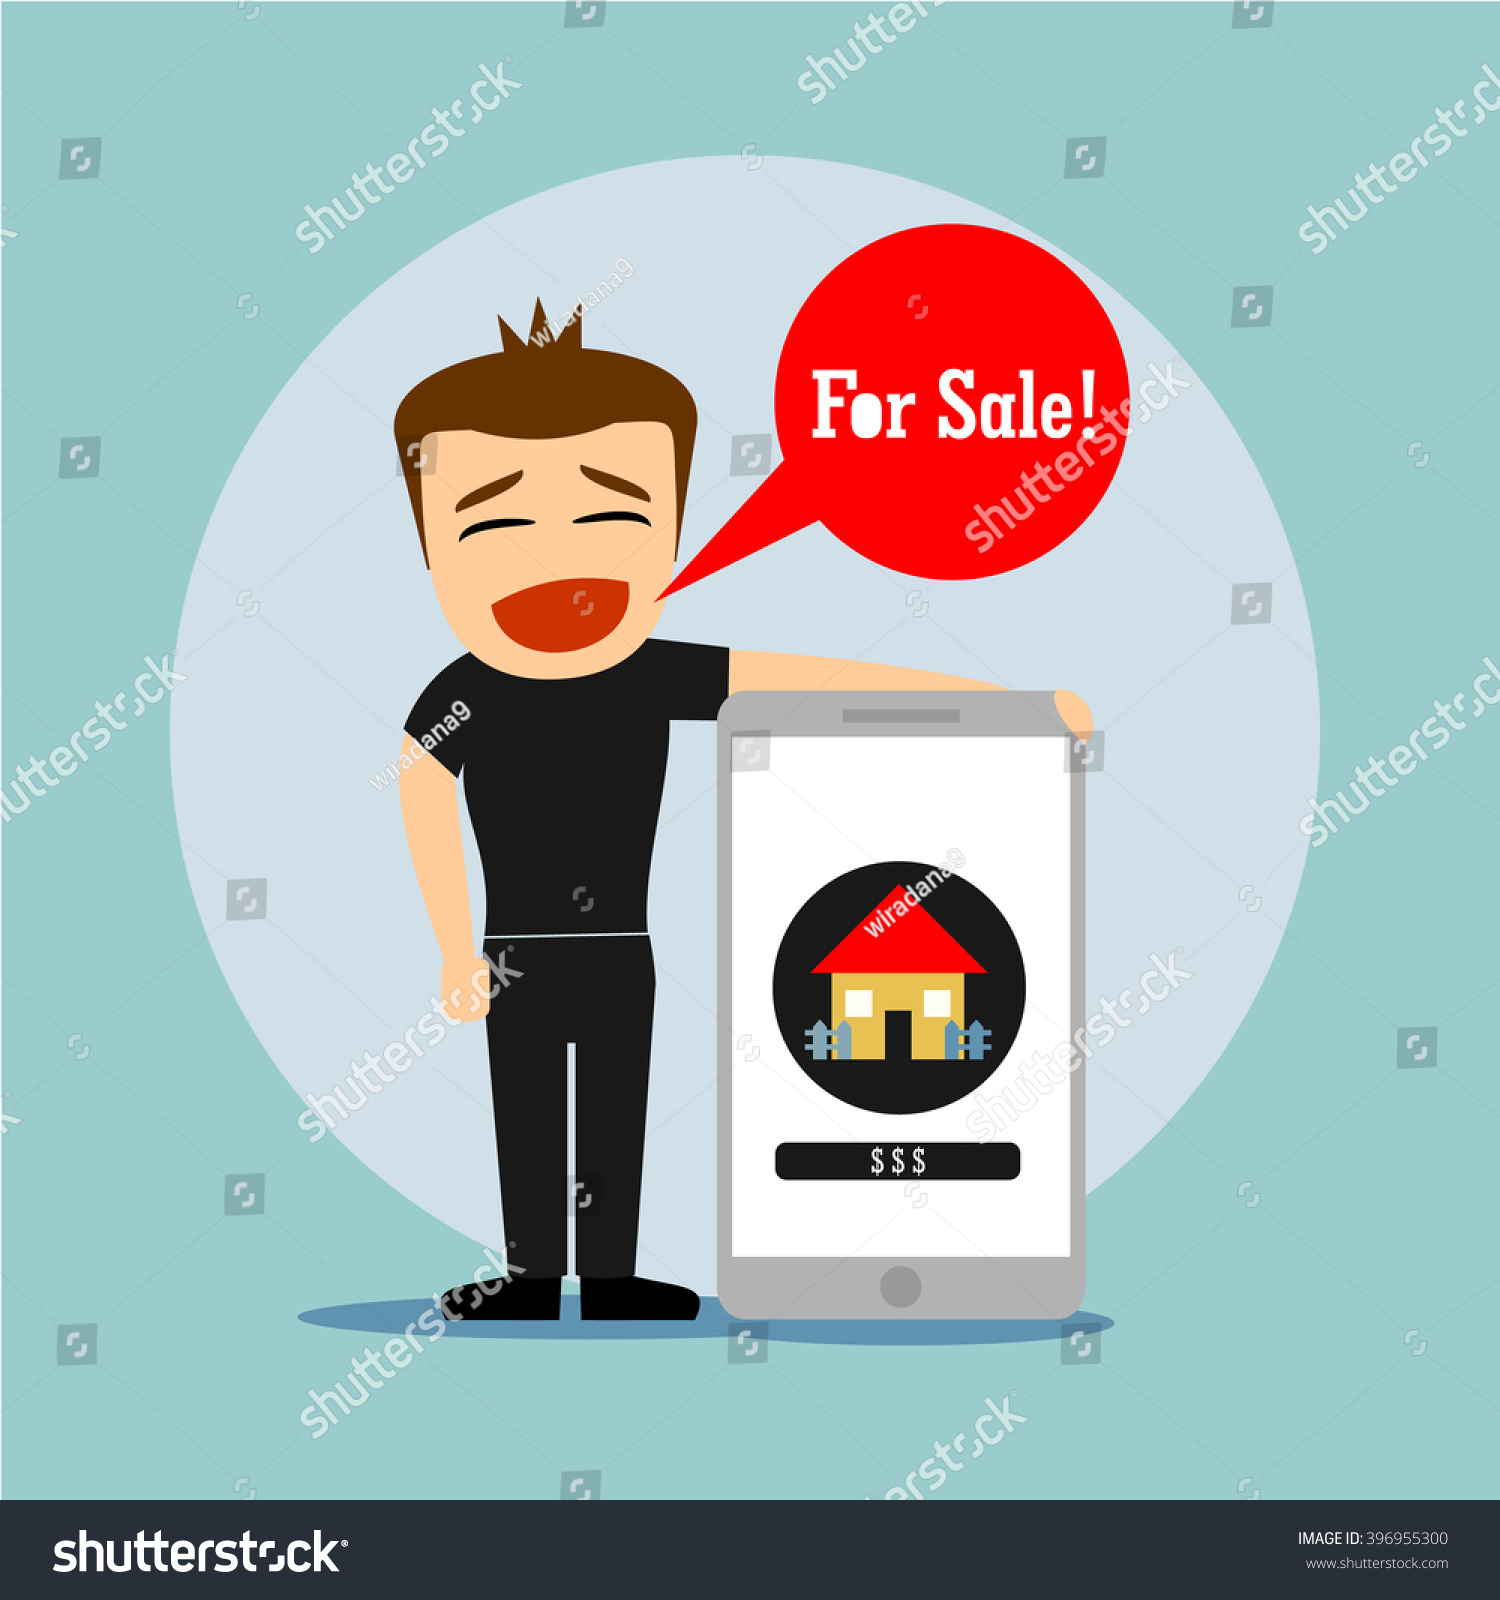 Boys cartoon character and big smart phone with icon house for sale